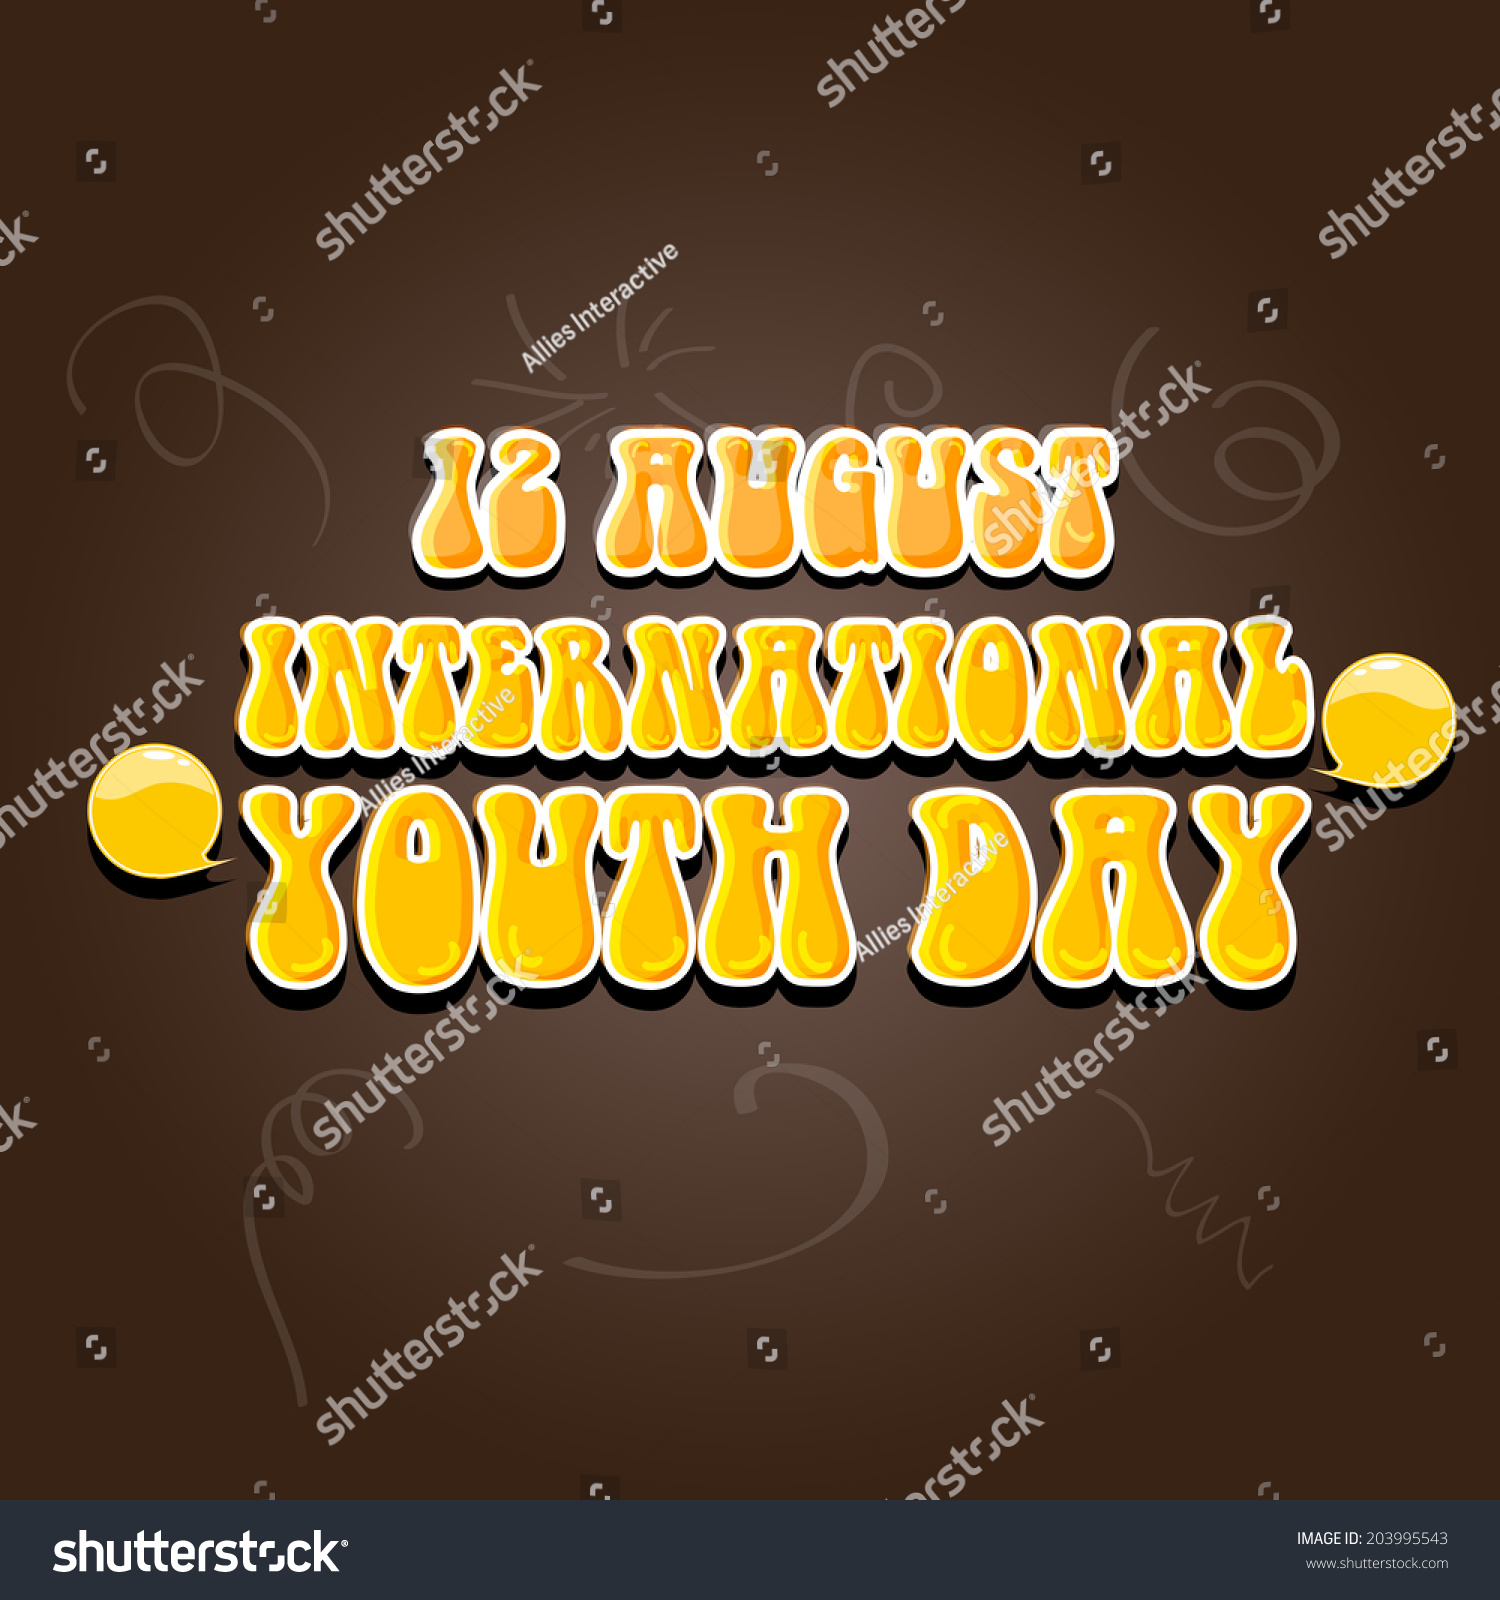 Poster design for youth - Poster Banner Or Flyer Design For International Youth Day Celebrations